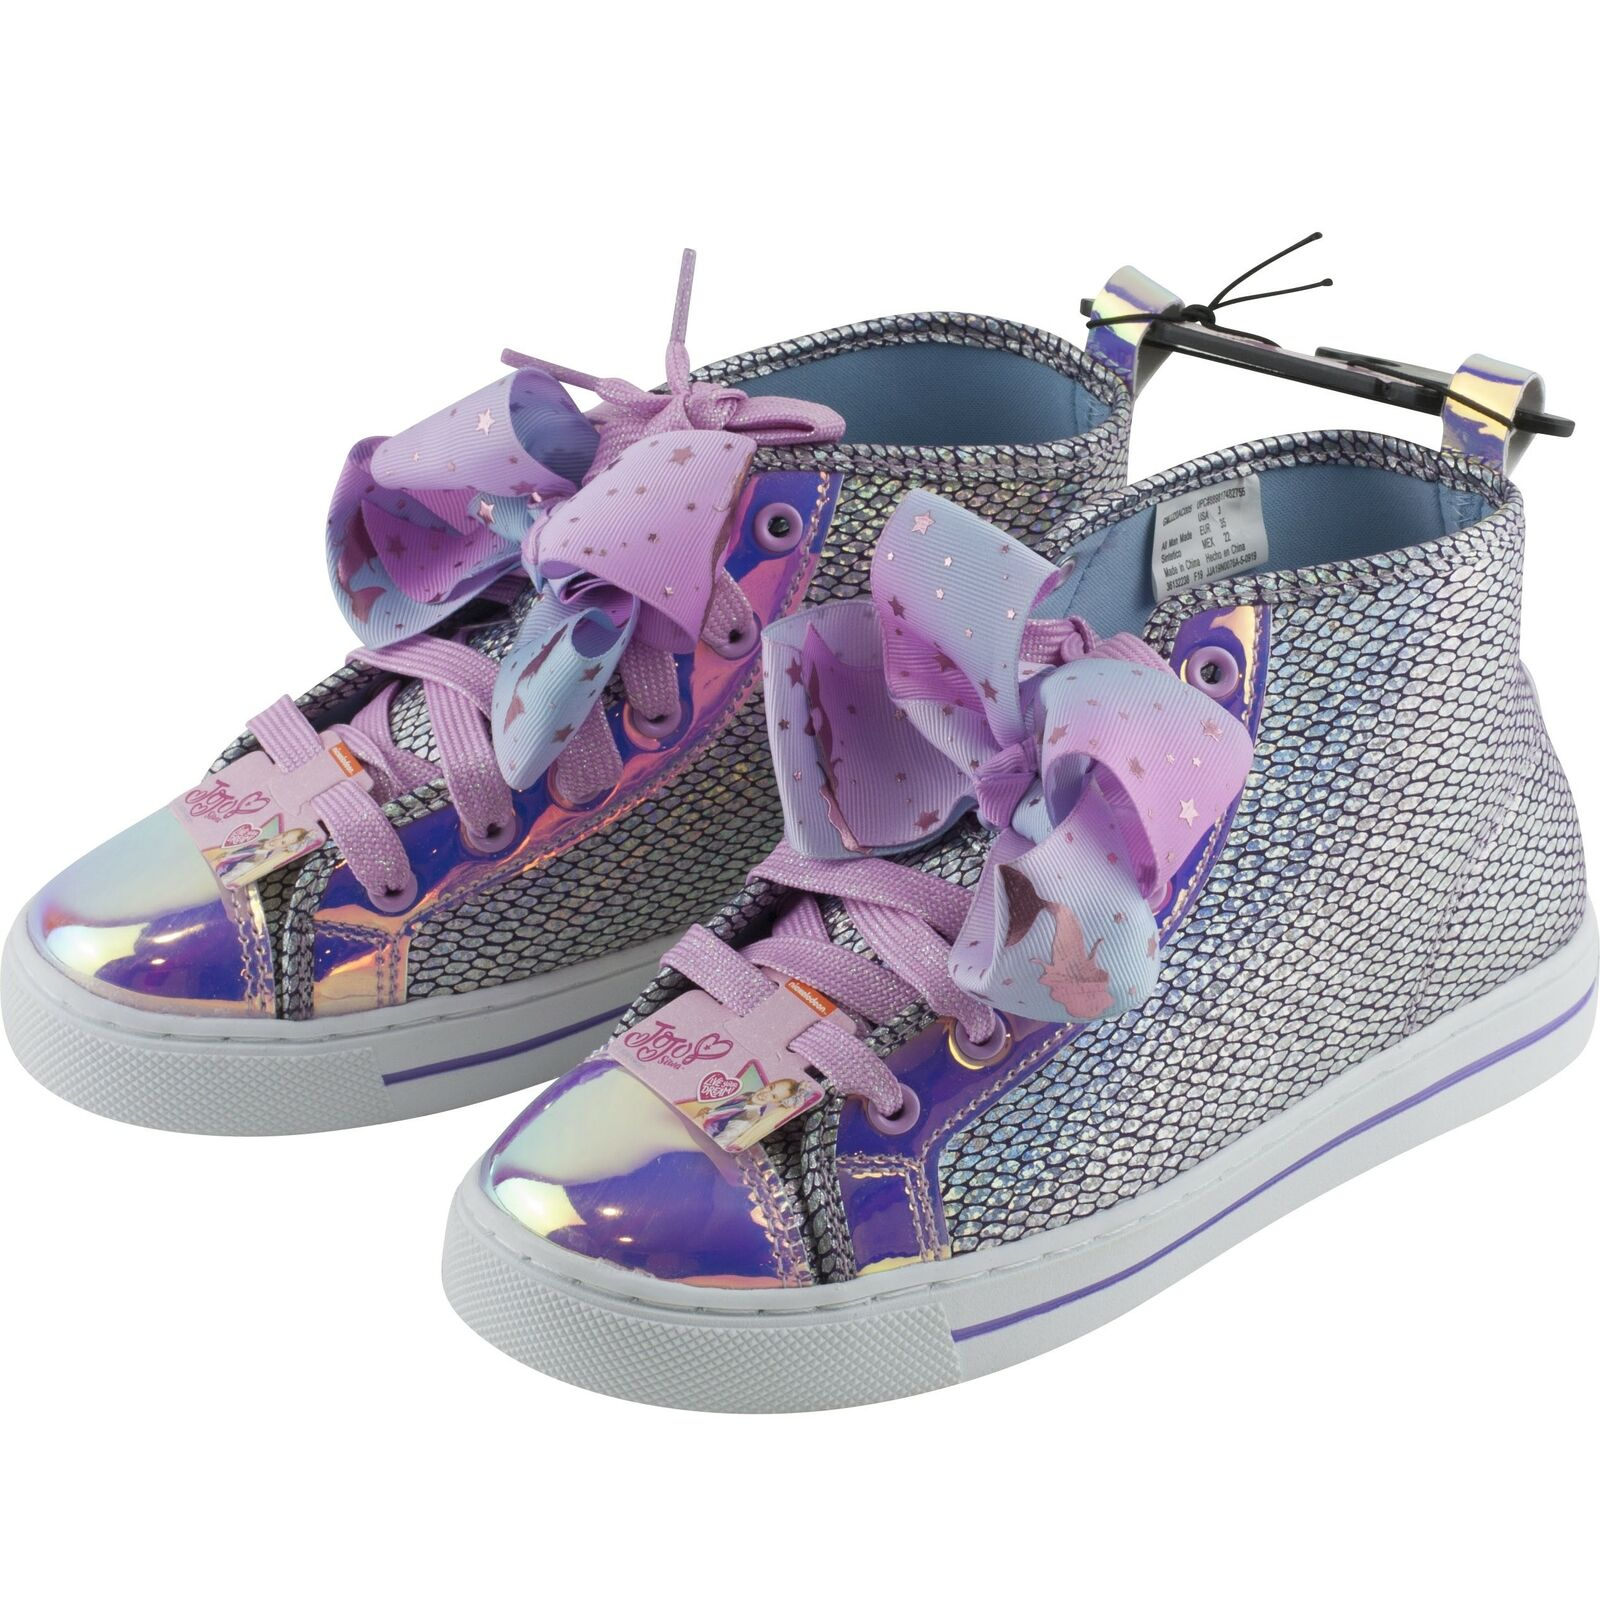 Jojo Siwa Silver Mermaid Scales Girls High Top Sneakers Shoes Bow